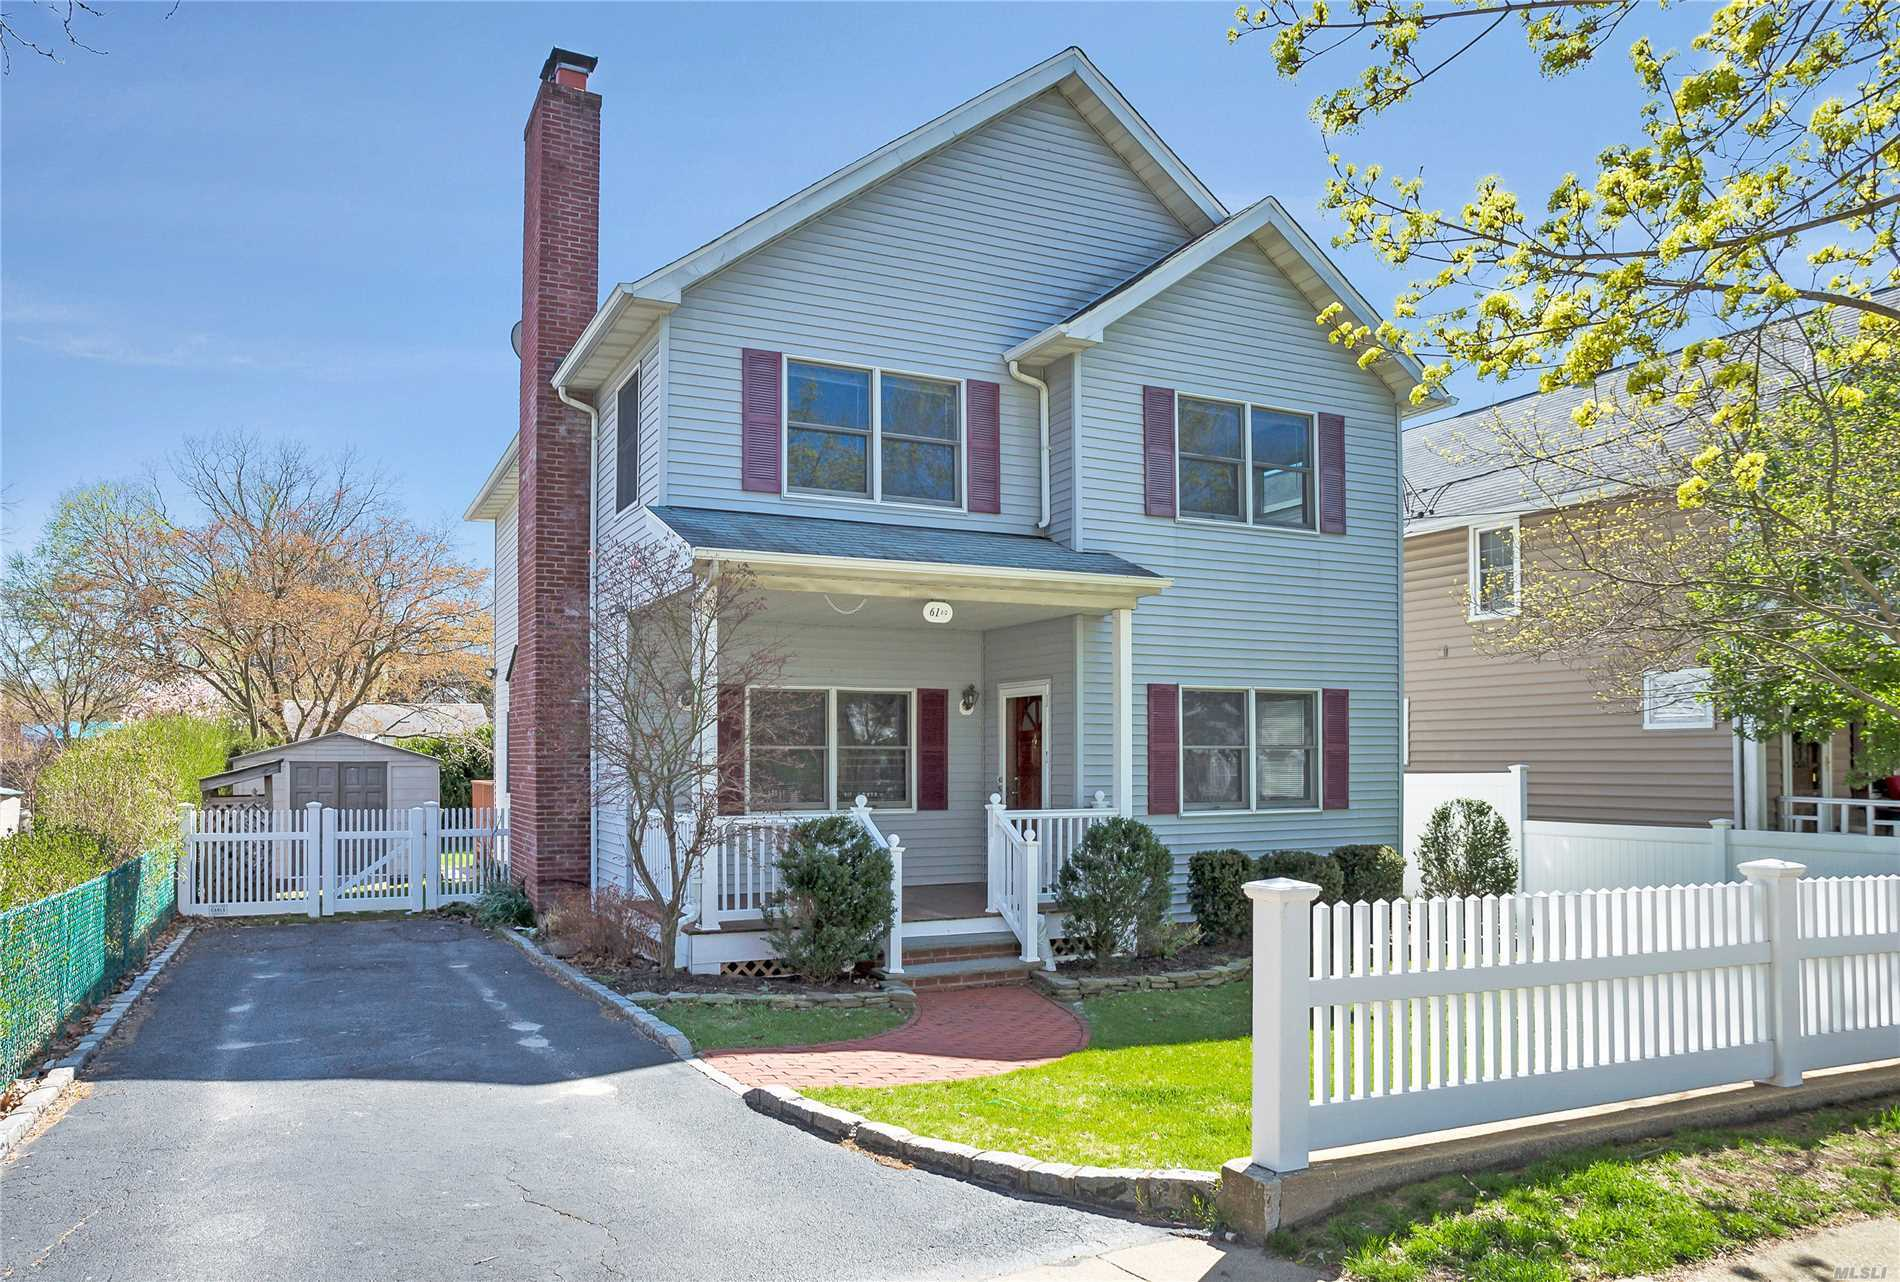 New To Market. Amazing Opportunity To Own This Classic 3-Bedroom, 2.5 Bath Colonial With Bright Spacious Rooms, Stone Fireplace And A Private Back Yard For Summer Entertaining. Short Distance To Award Winning Glenwood Landing Elementary School, Long Island Railroad, Restaurants And Shopping.